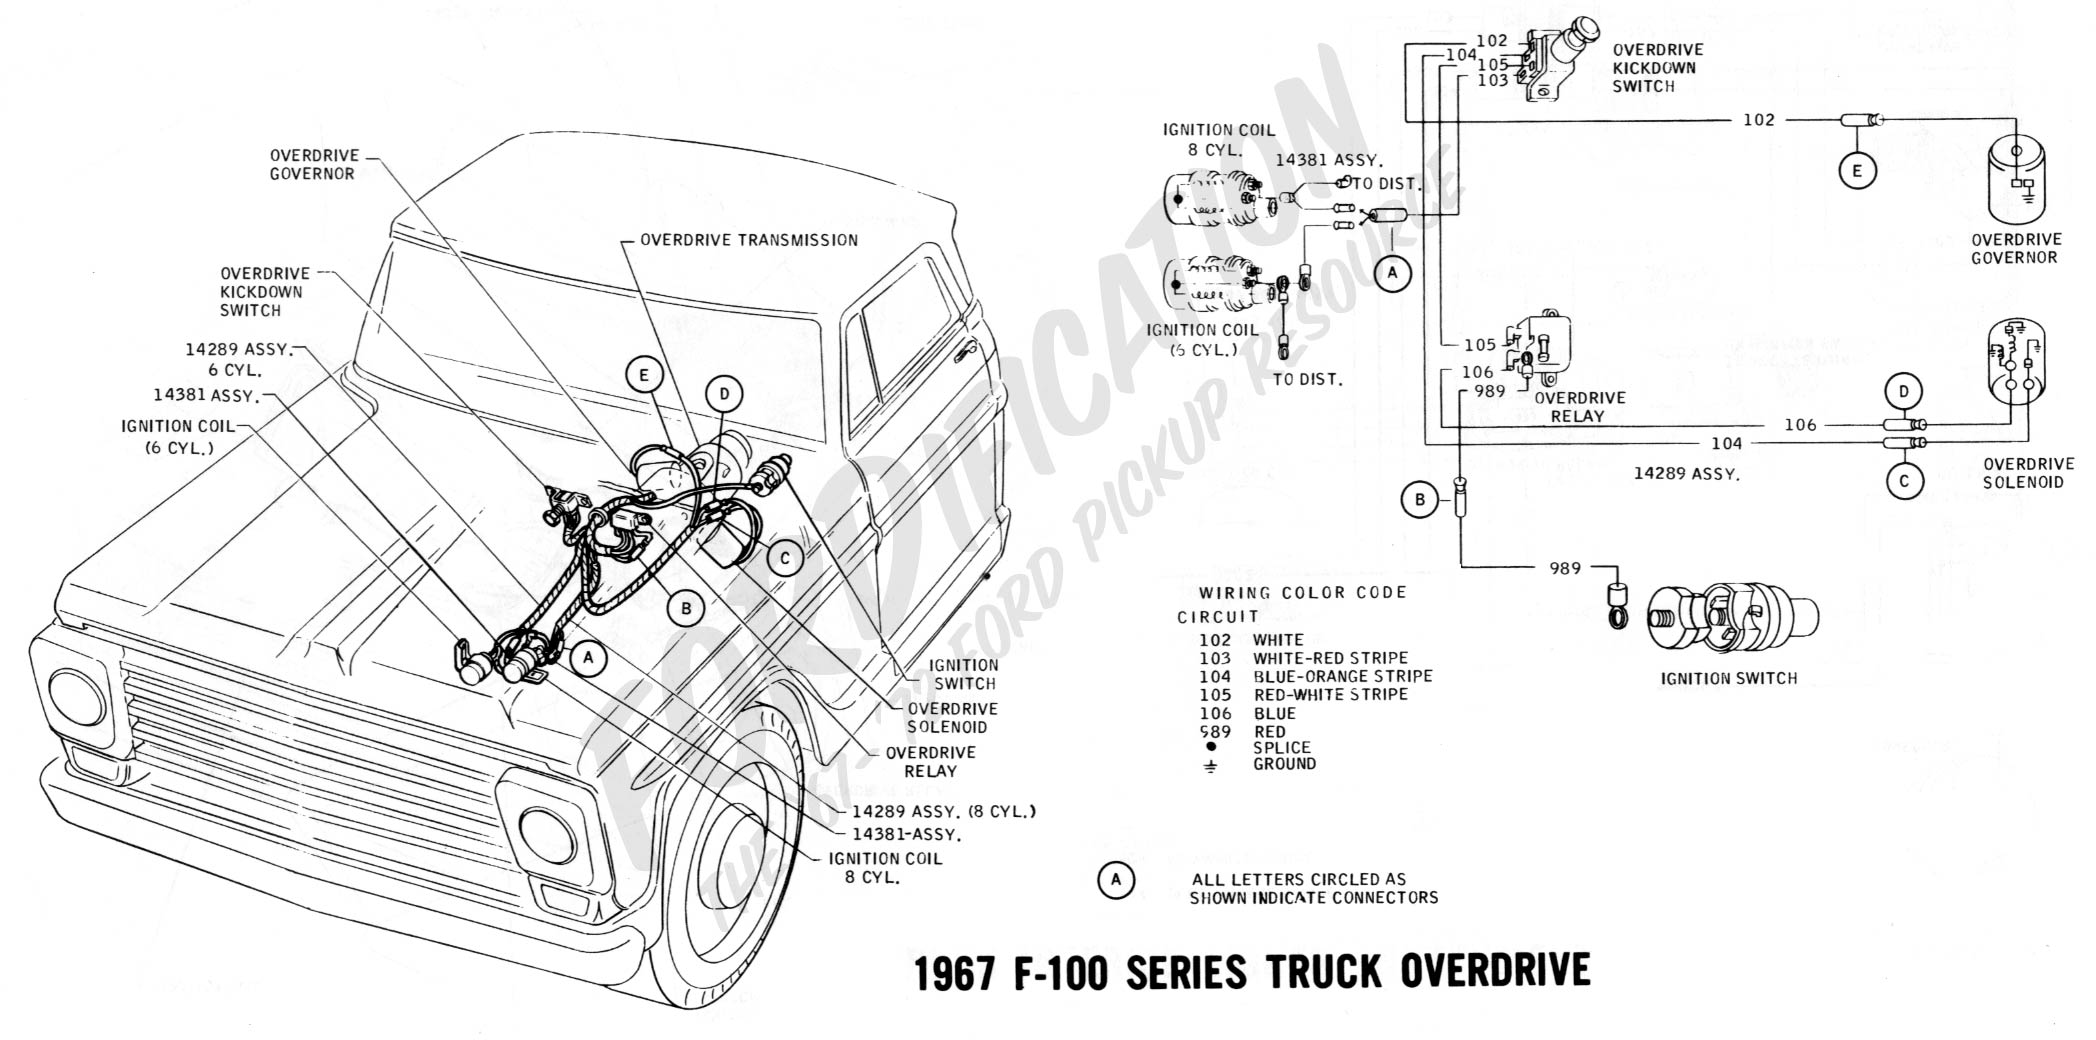 ford truck technical drawings and schematics section h wiring ford wiring diagrams 1967 f 100 series overdrive 1968 wiring schematics